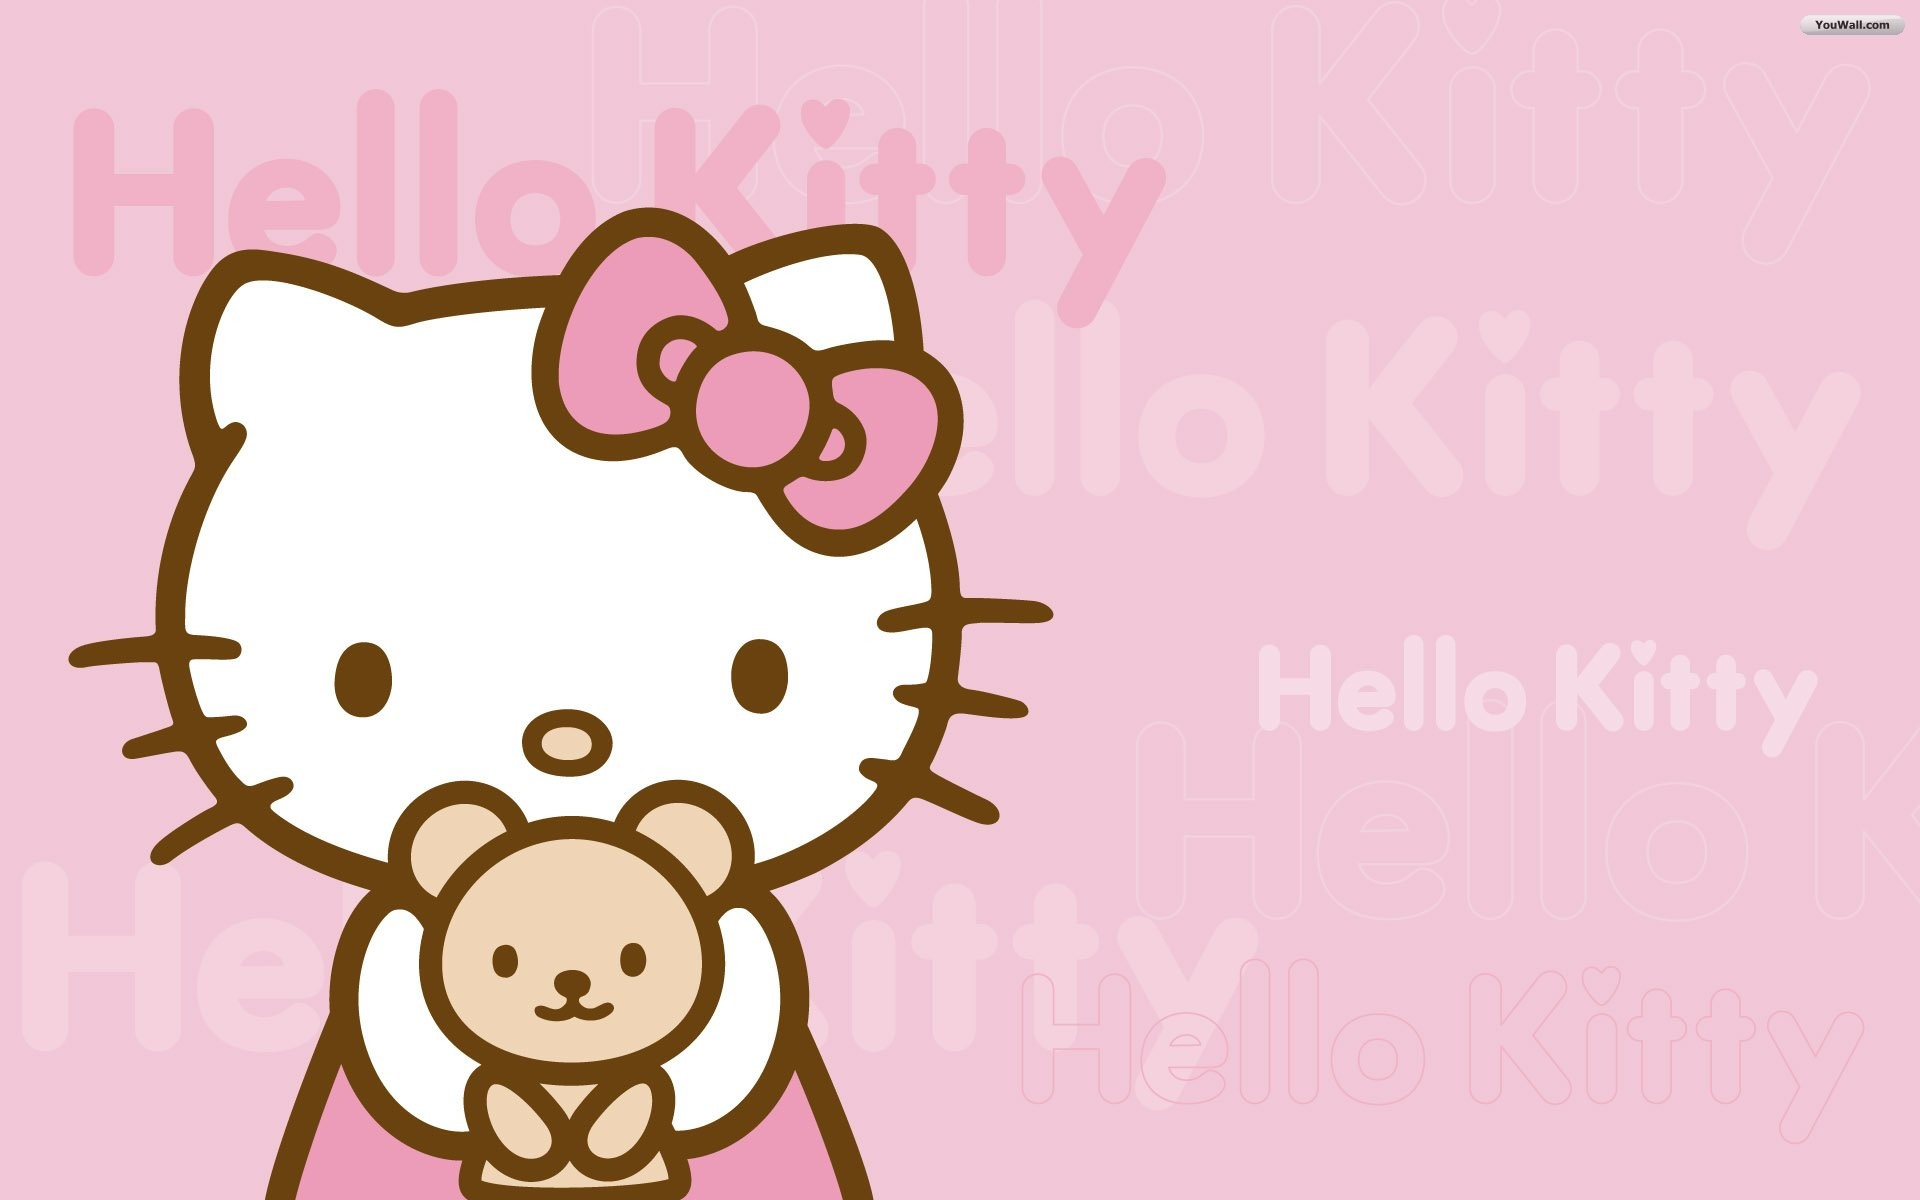 1920x1200 Pink Car Youwall Hello Kitty Free 124037 Wallpaper wallpaper